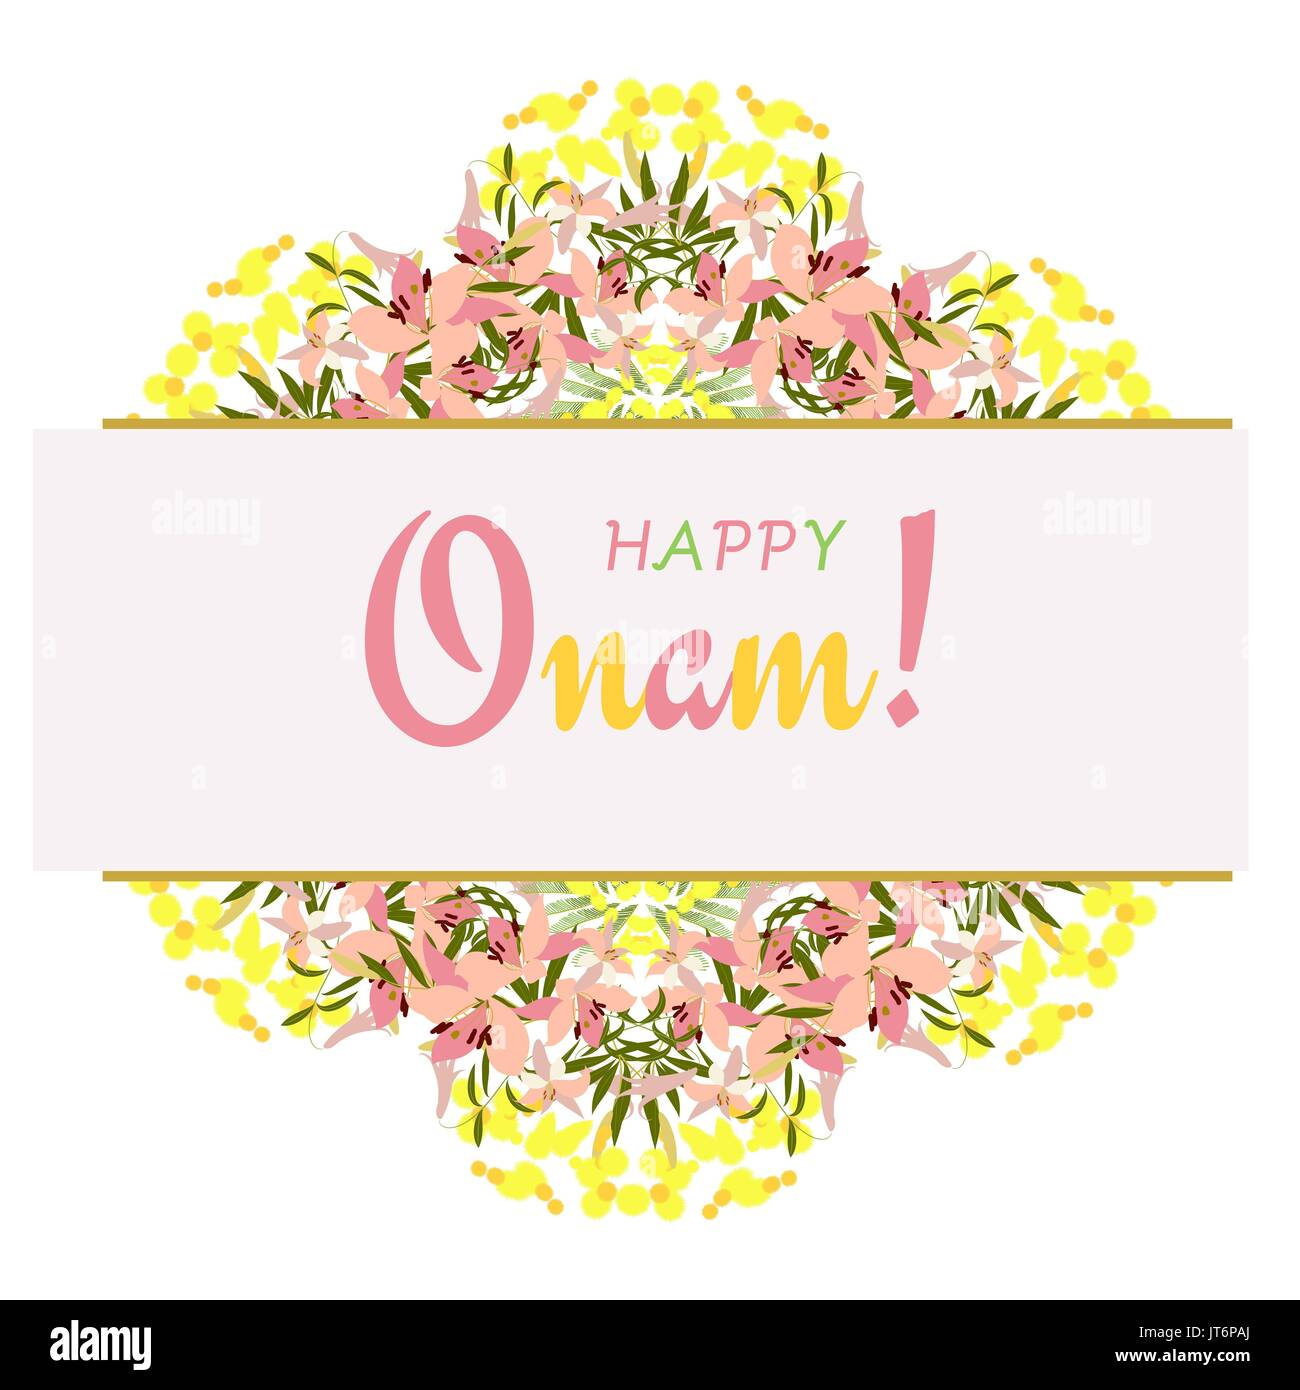 Onam Ceremony Stock Photos Onam Ceremony Stock Images Alamy